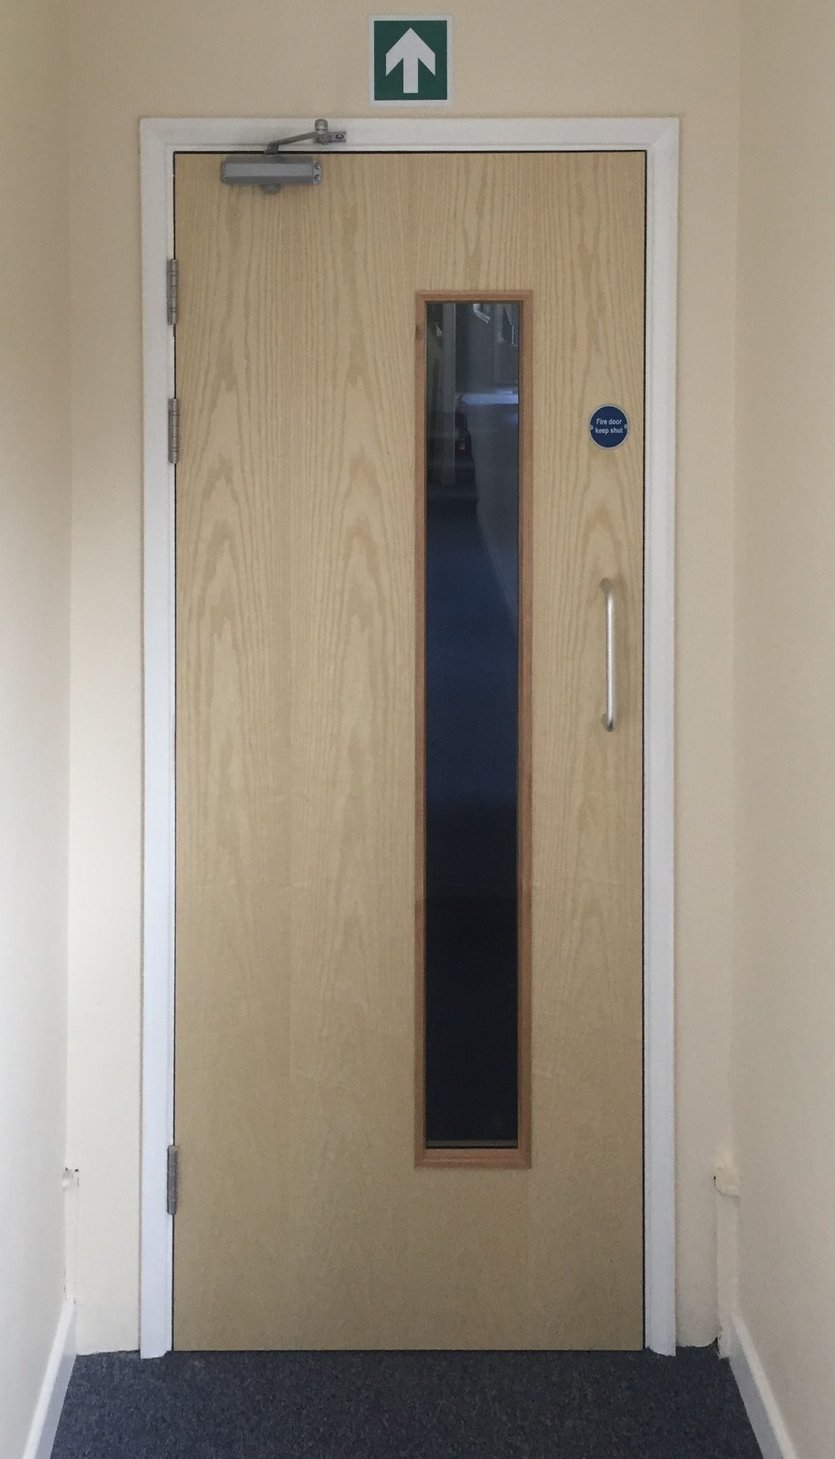 Fire door inspection revealed Fire doors in a factory corridor were not compliant. by MJS